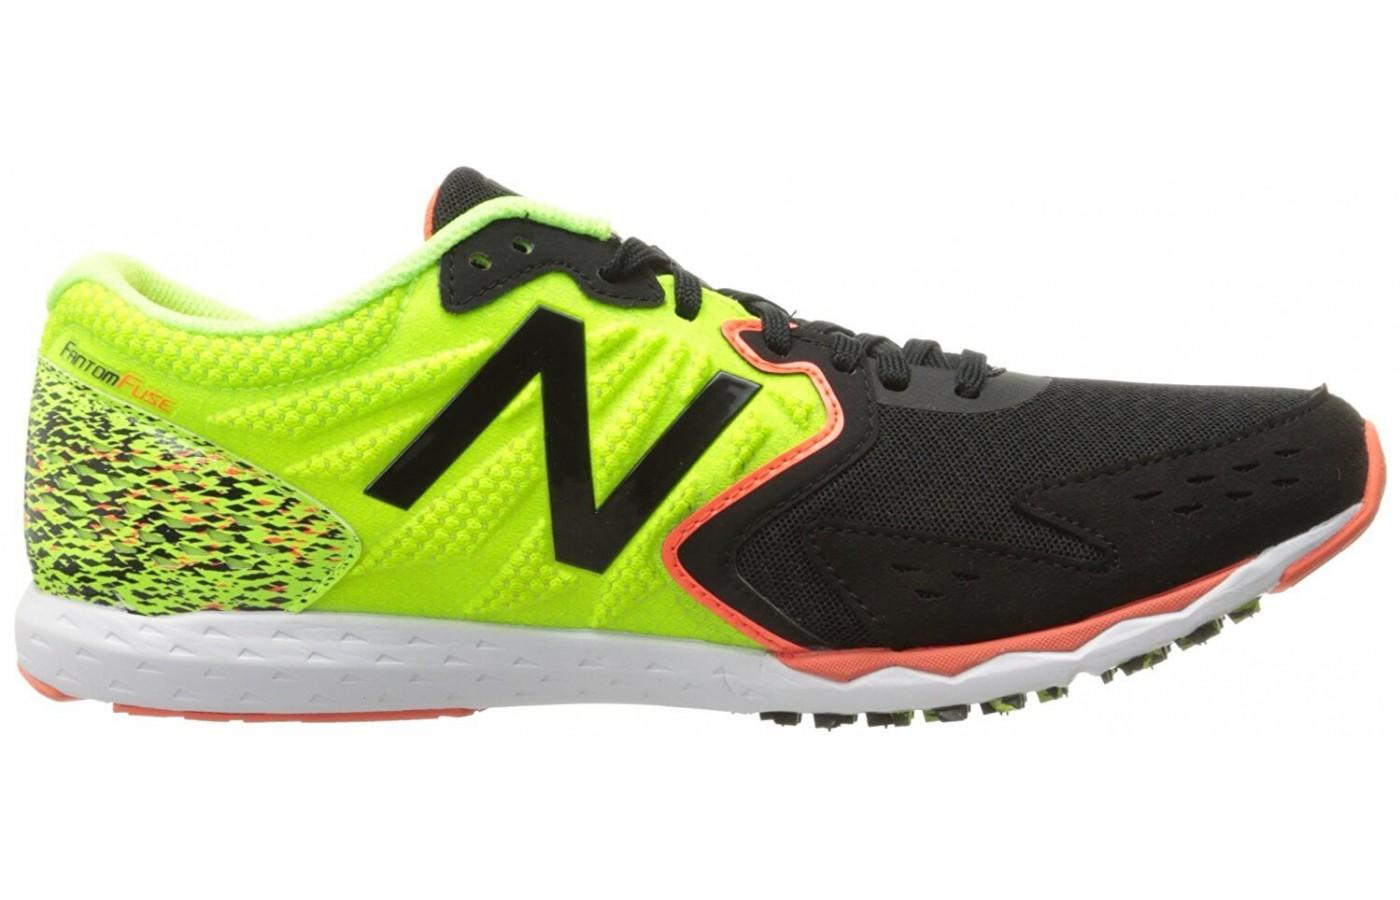 New Balance Hanzo S is a neutral shoe